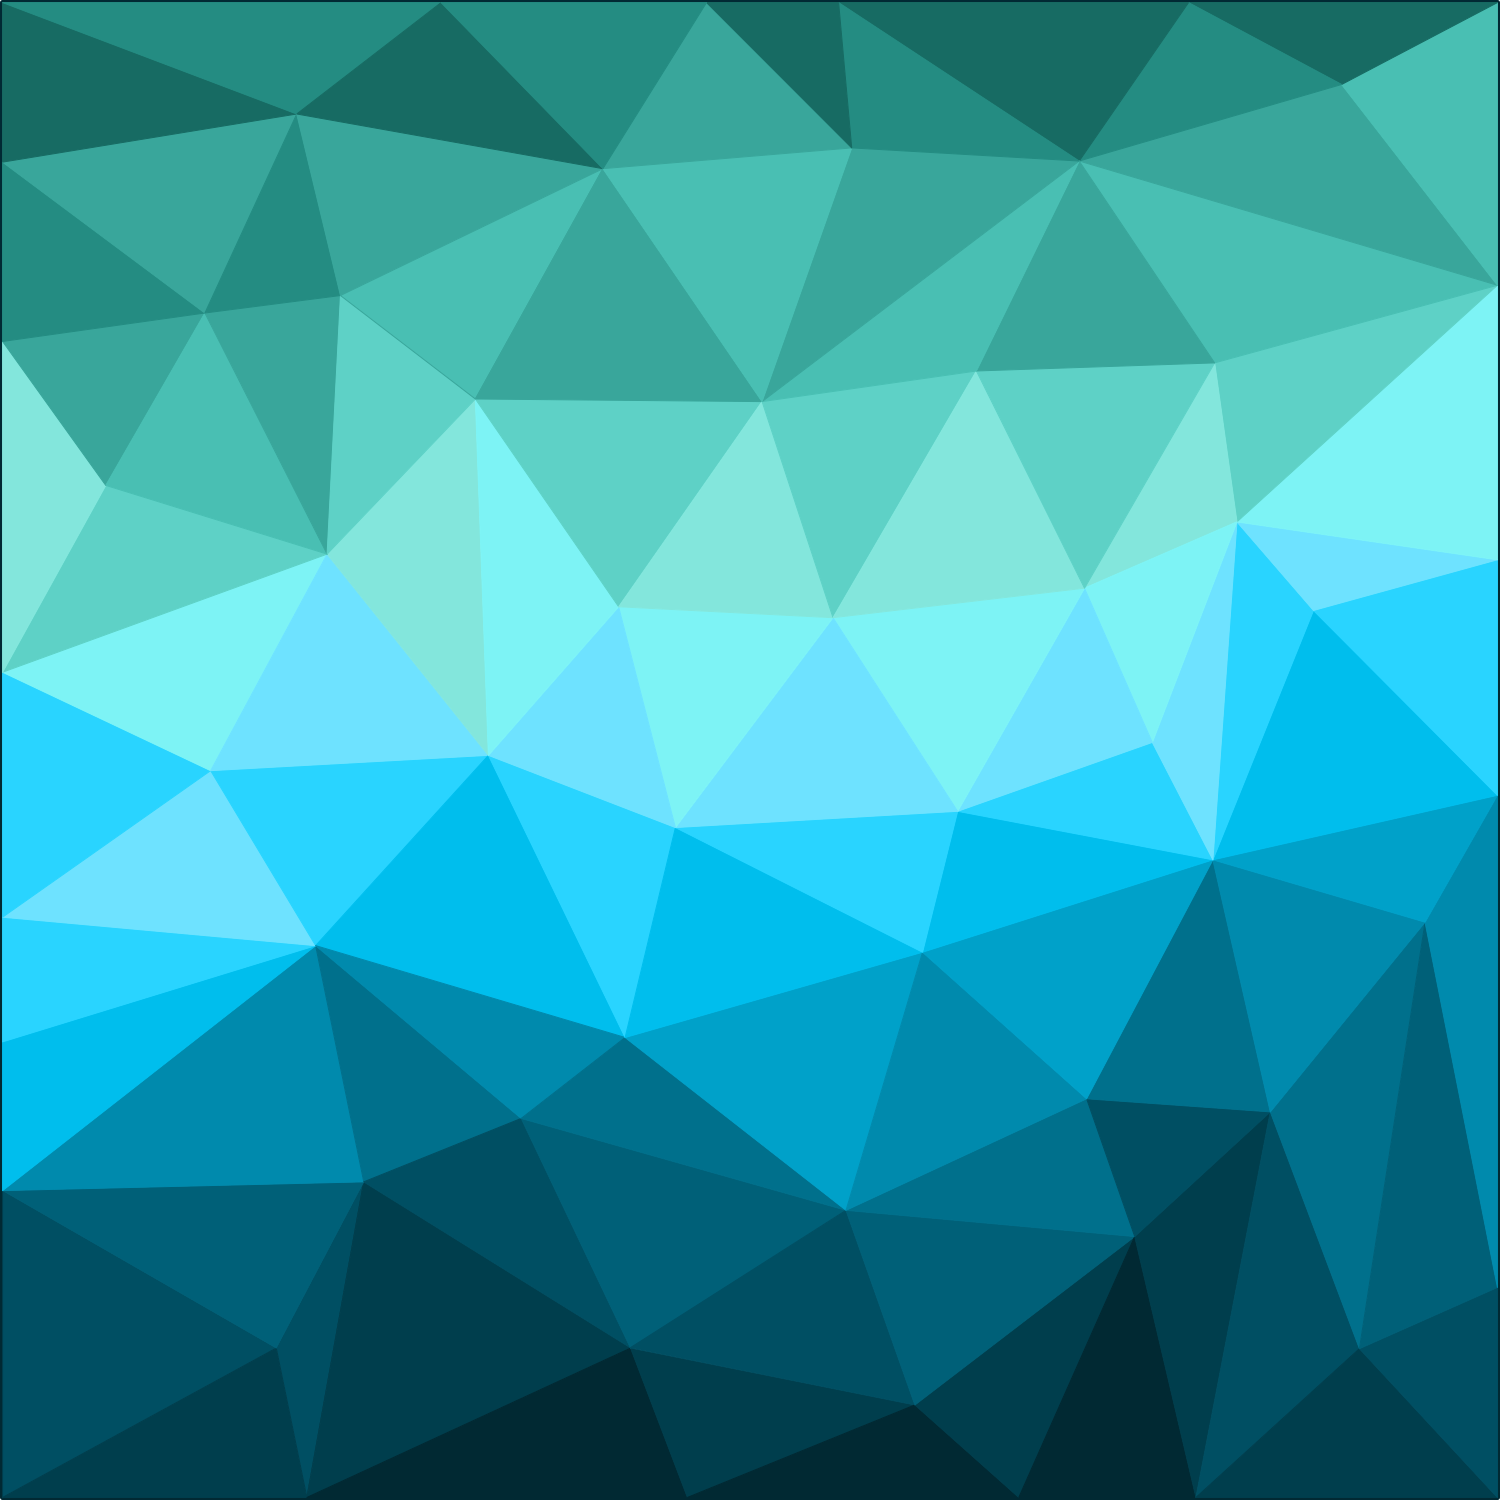 Vector for free use: Triangle geometrical background